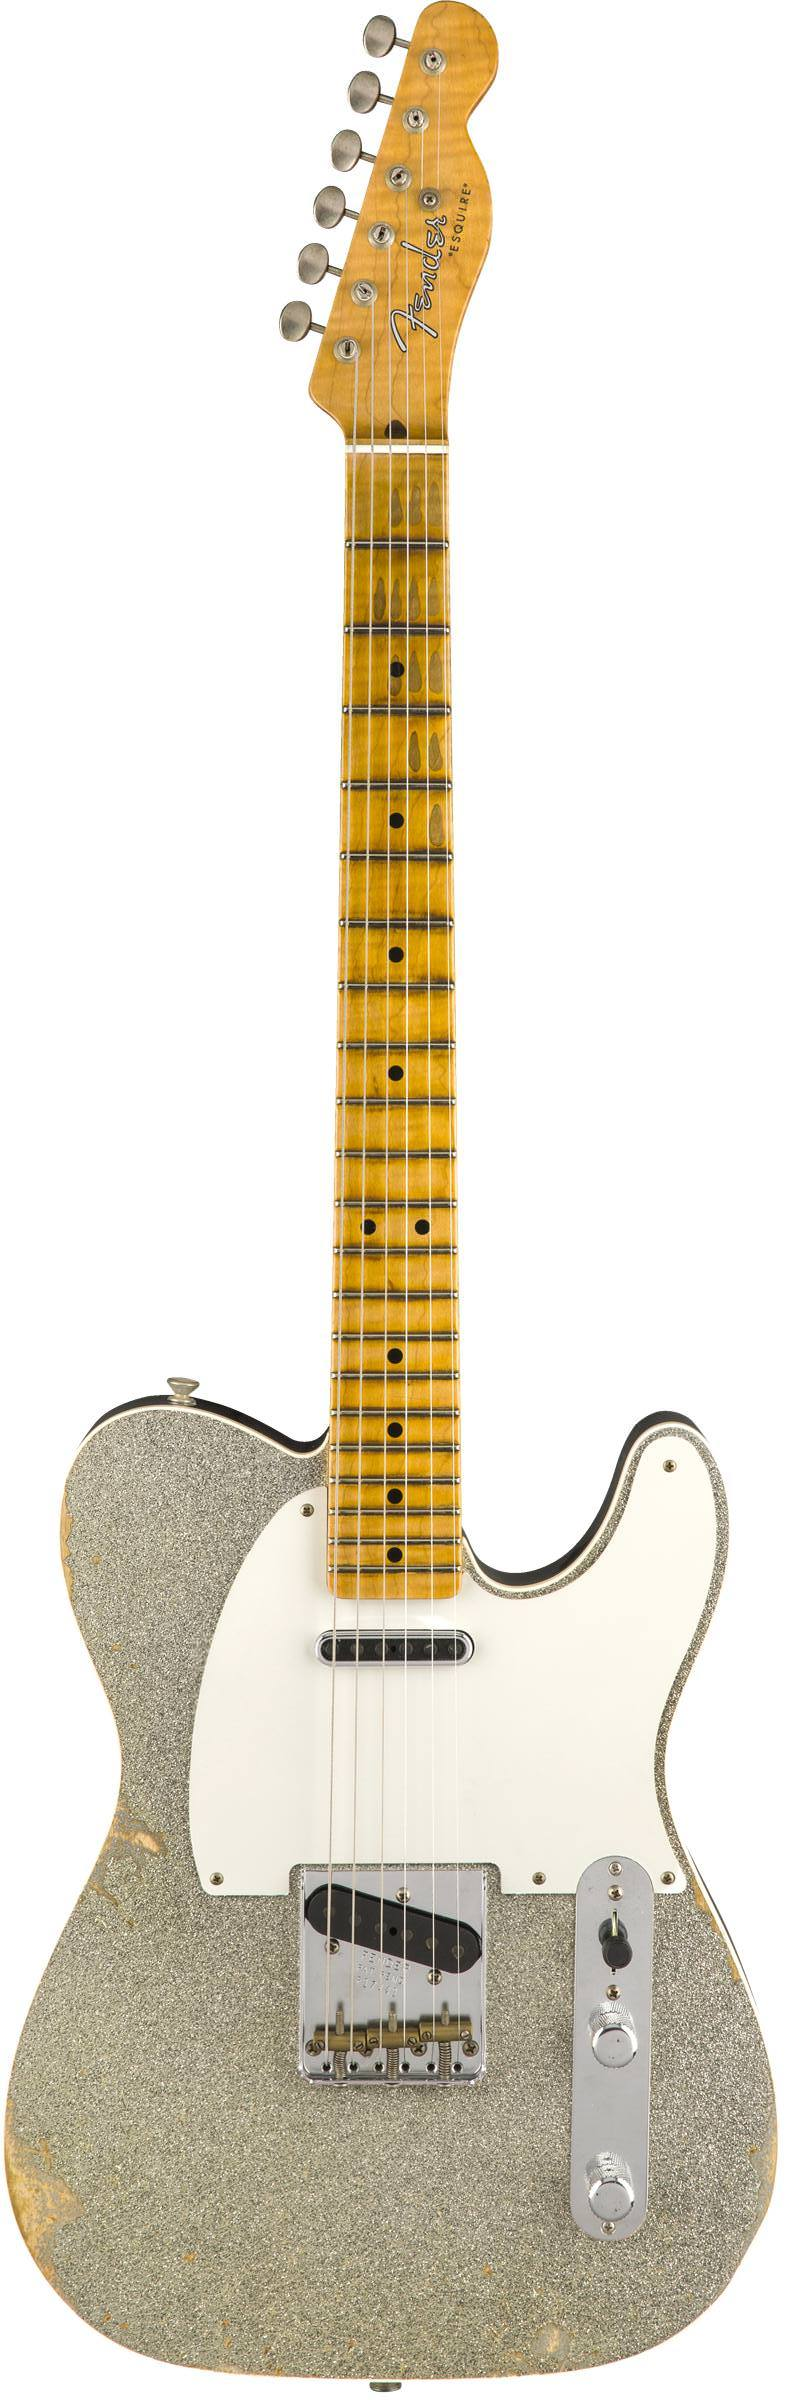 FENDER 2018 LTD RELIC® DOUBLE ESQUIRE® `SPECIAL` - AGED BLACK W/SILVER SPARKLE TOP